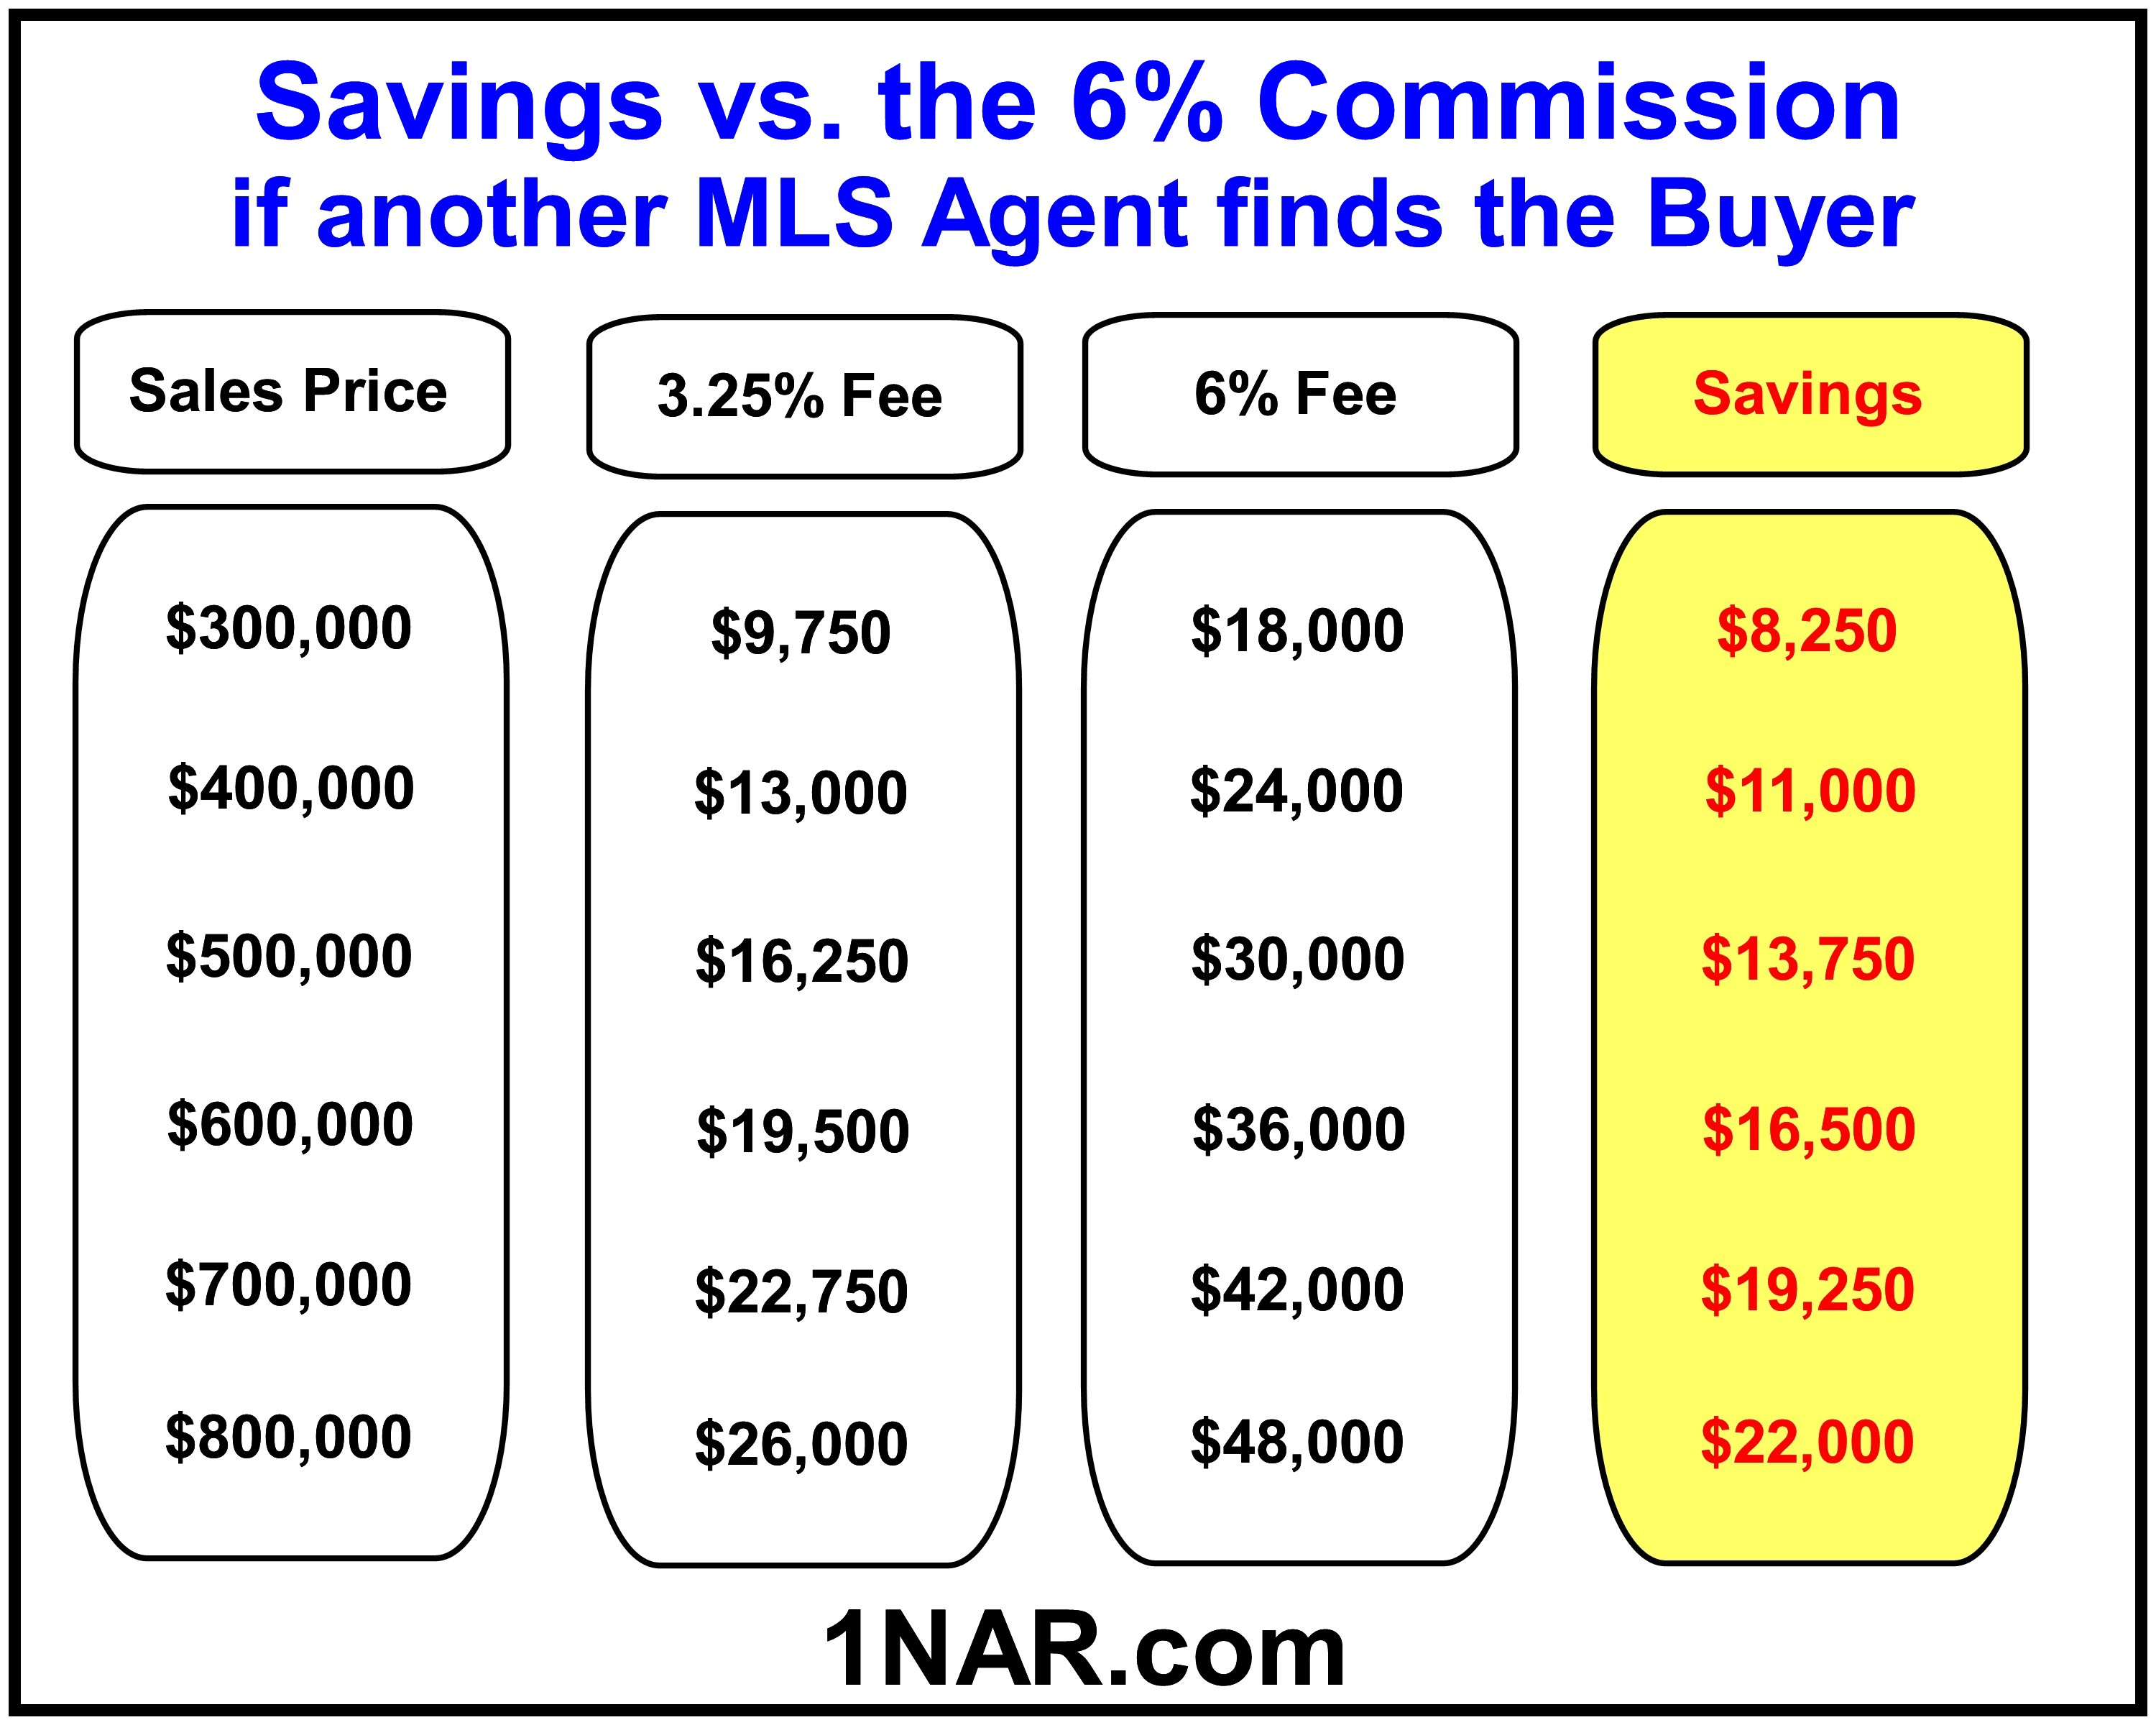 Savings if another MLS Agent finds the Buyer with our 3.25% commission vs a 6% Commission at various sale prices. For example at $500,000 our 3.25% Listing fee is $16,250 while the 6% commission is $30,000 so you would save $13,750 by listing with us.